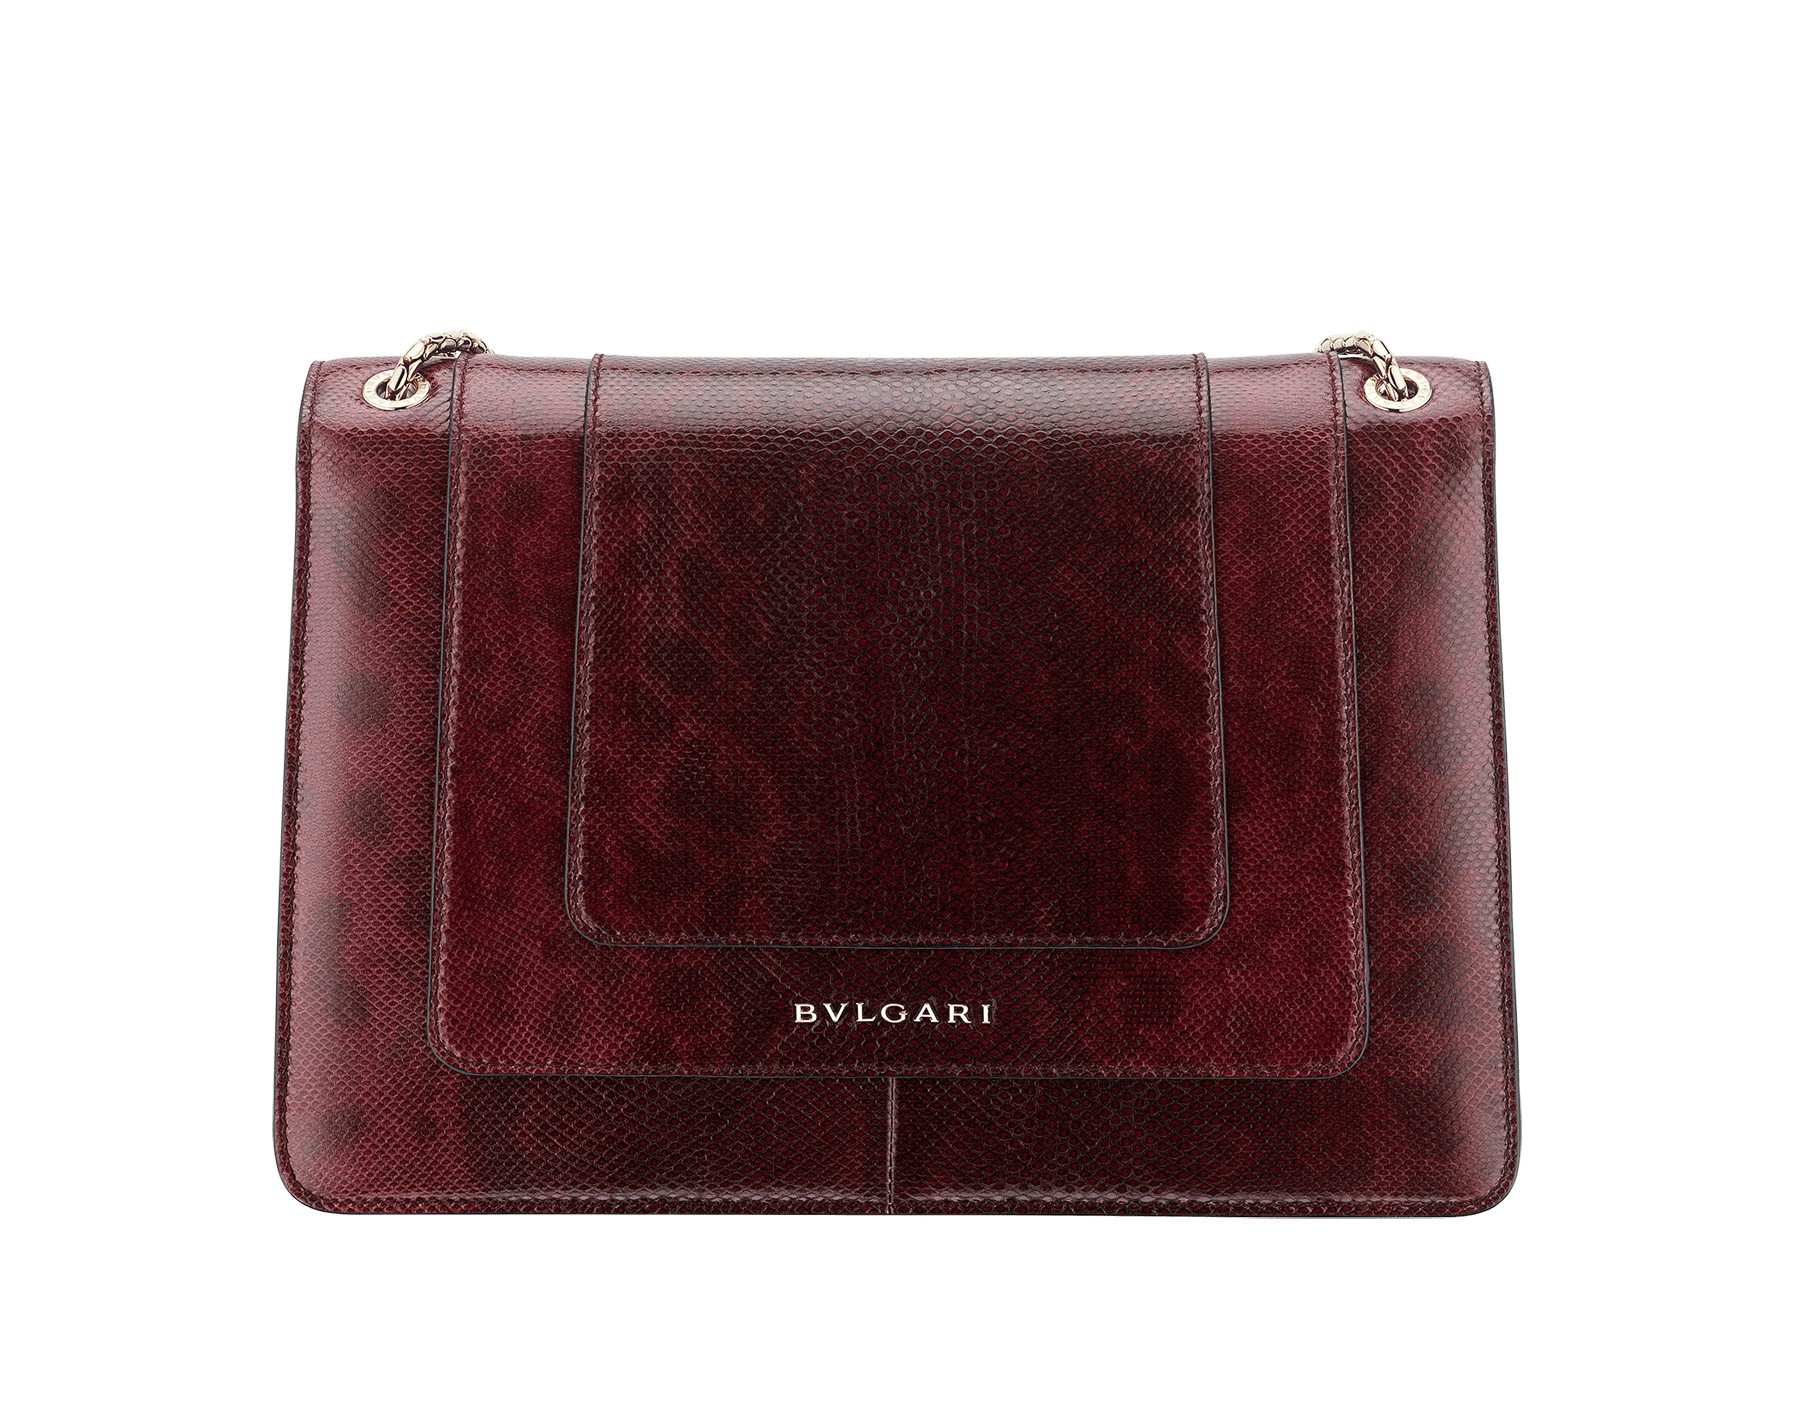 Flap cover bag Serpenti Forever in roman garnet shiny karung skin. Brass light gold plated tempting snake head closure in shiny black and white enamel, with eyes in green malachite. 286199 image 3